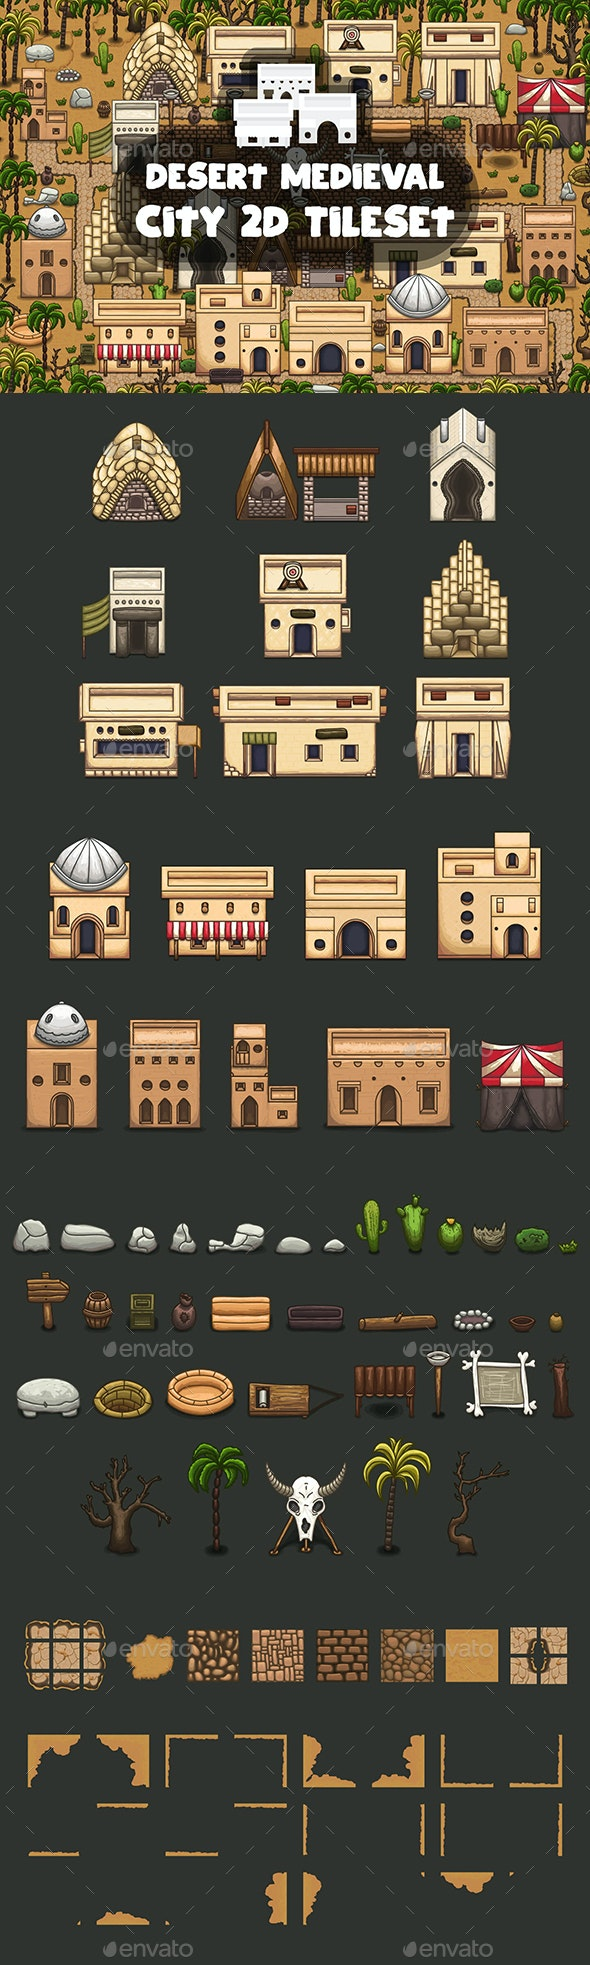 Desert Medieval City Tile set - Tilesets Game Assets